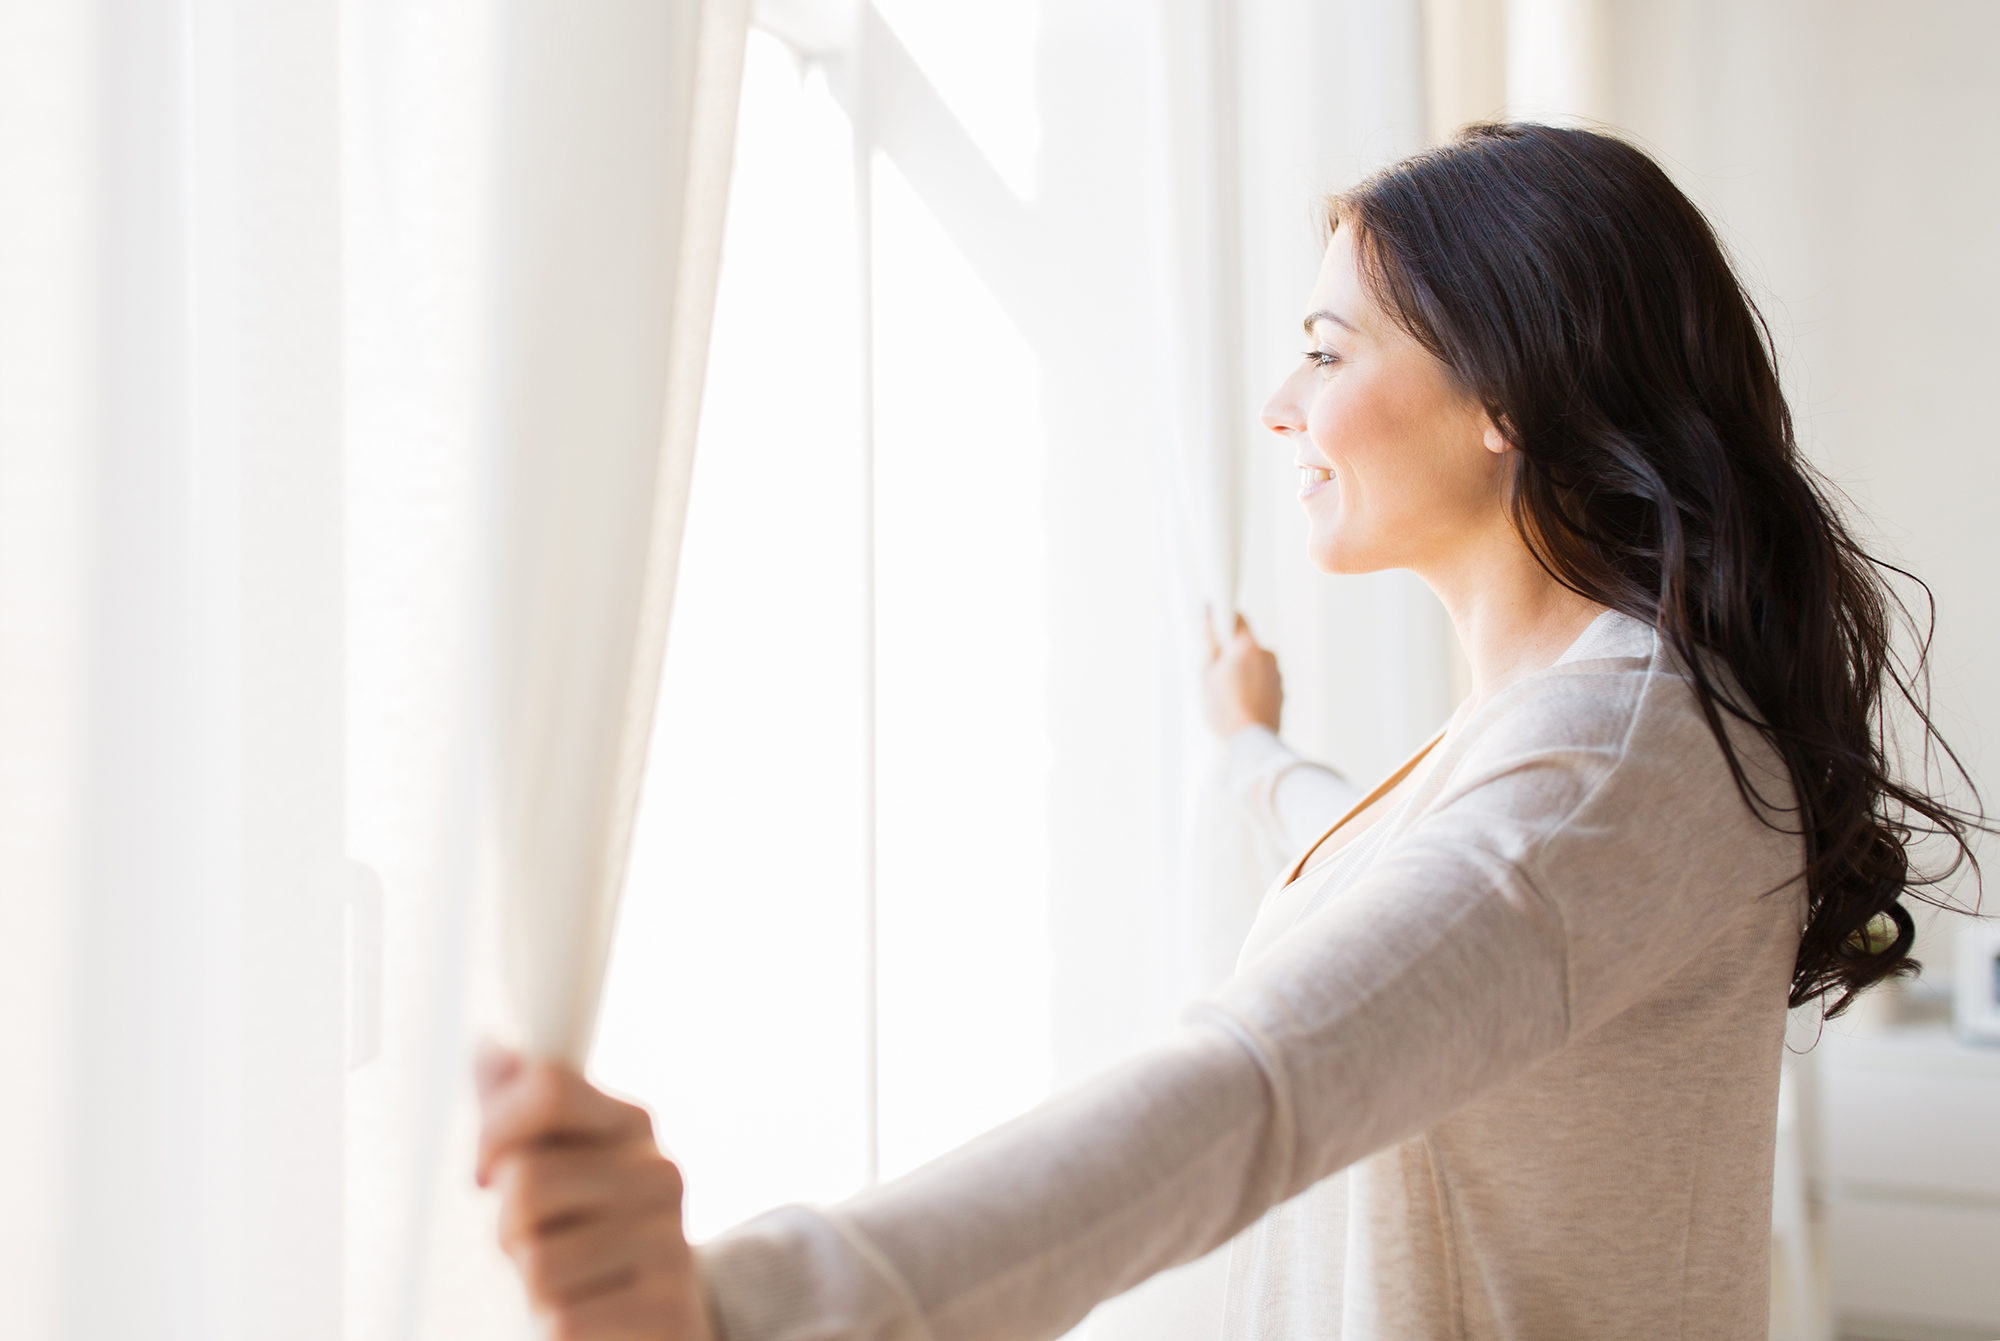 close-up-of-woman-opening-window-curtains